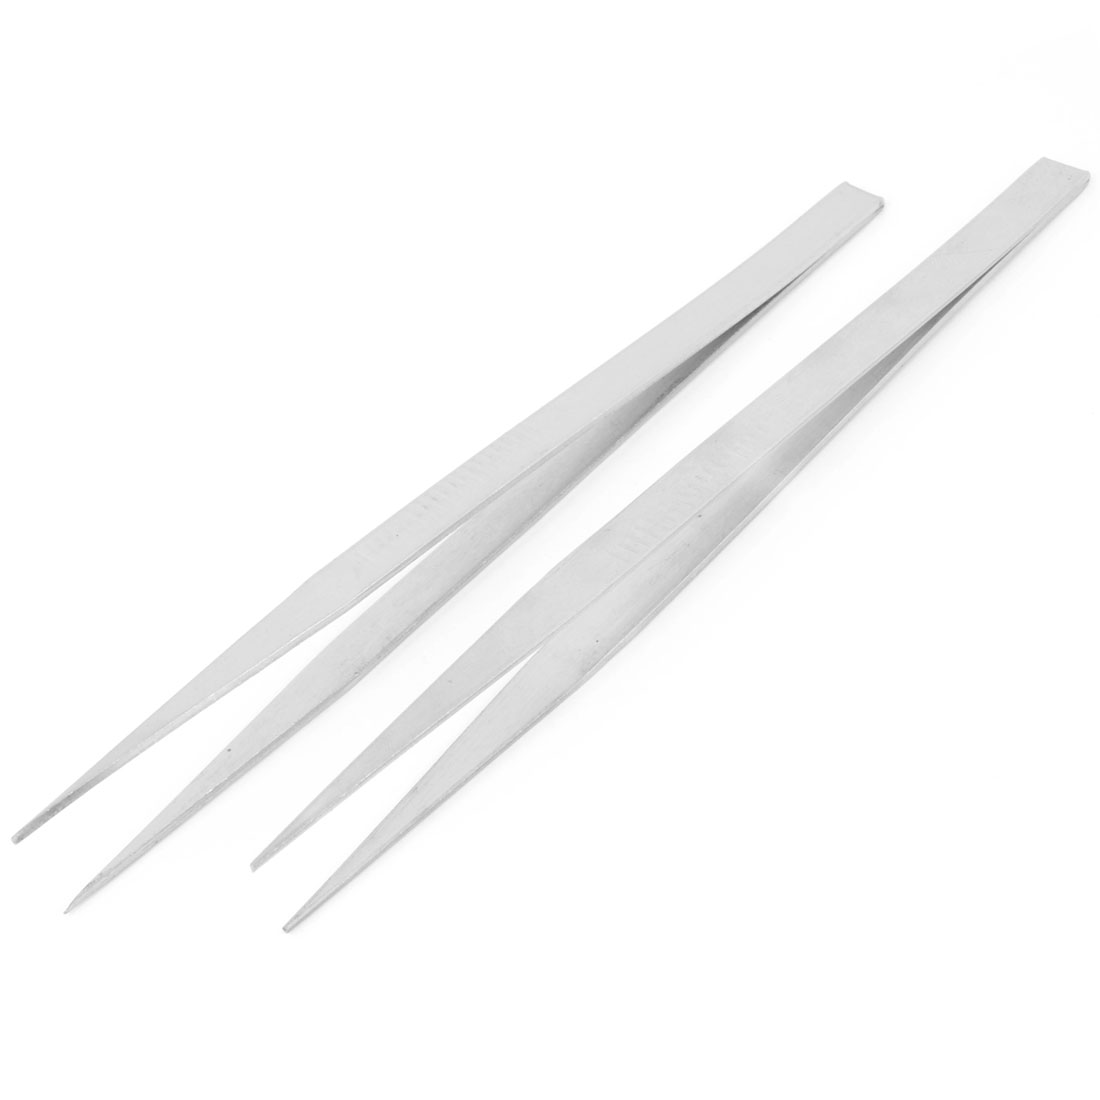 18.5cm Length Silver Tone Forceps Straight Pointy Tweezers 2 Pcs